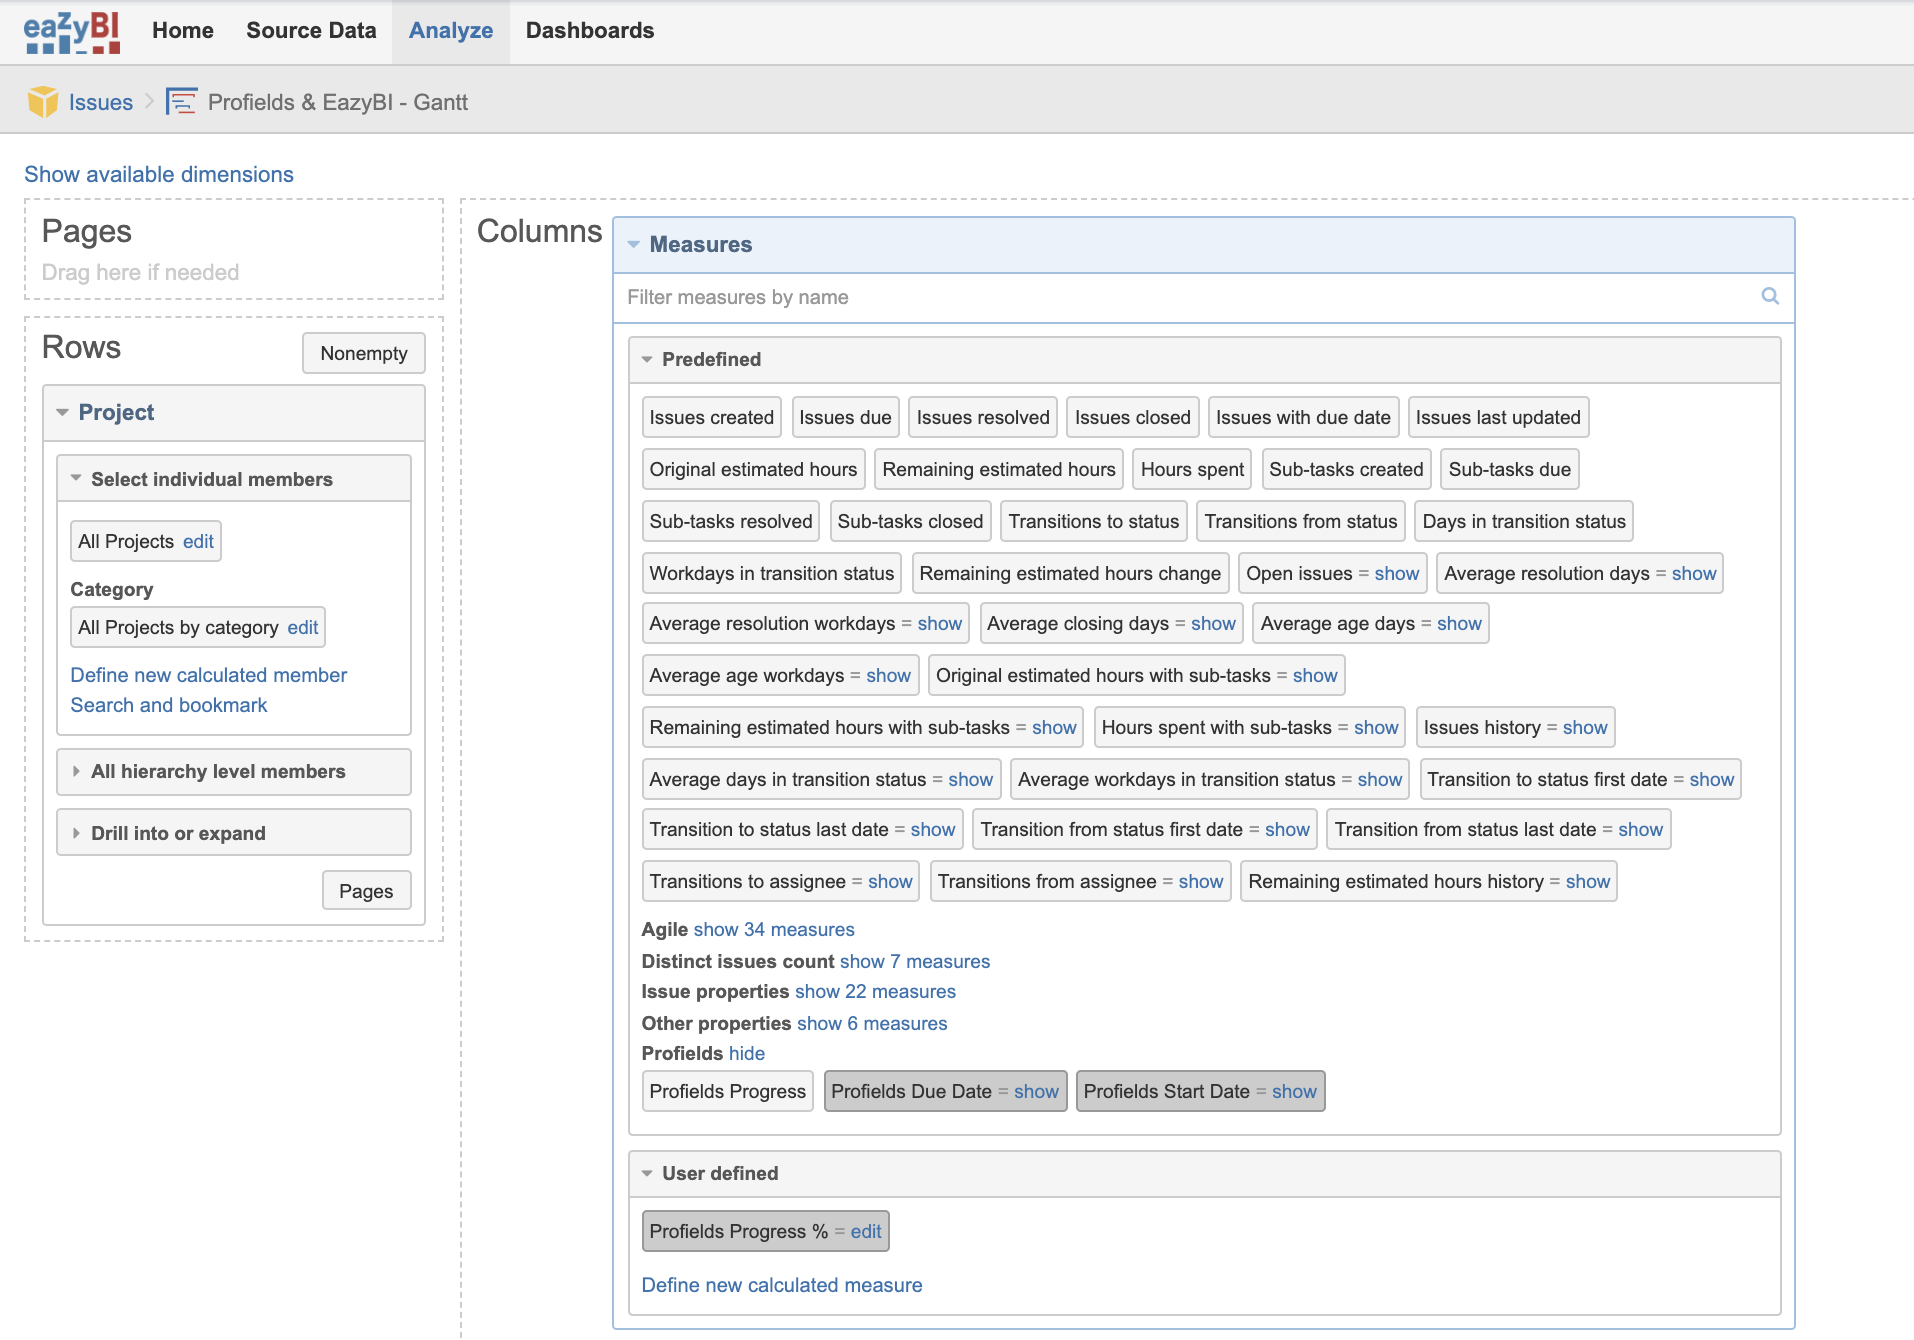 Imported project properties from Profields into eazyBI configuration for Jira multiple project tracking